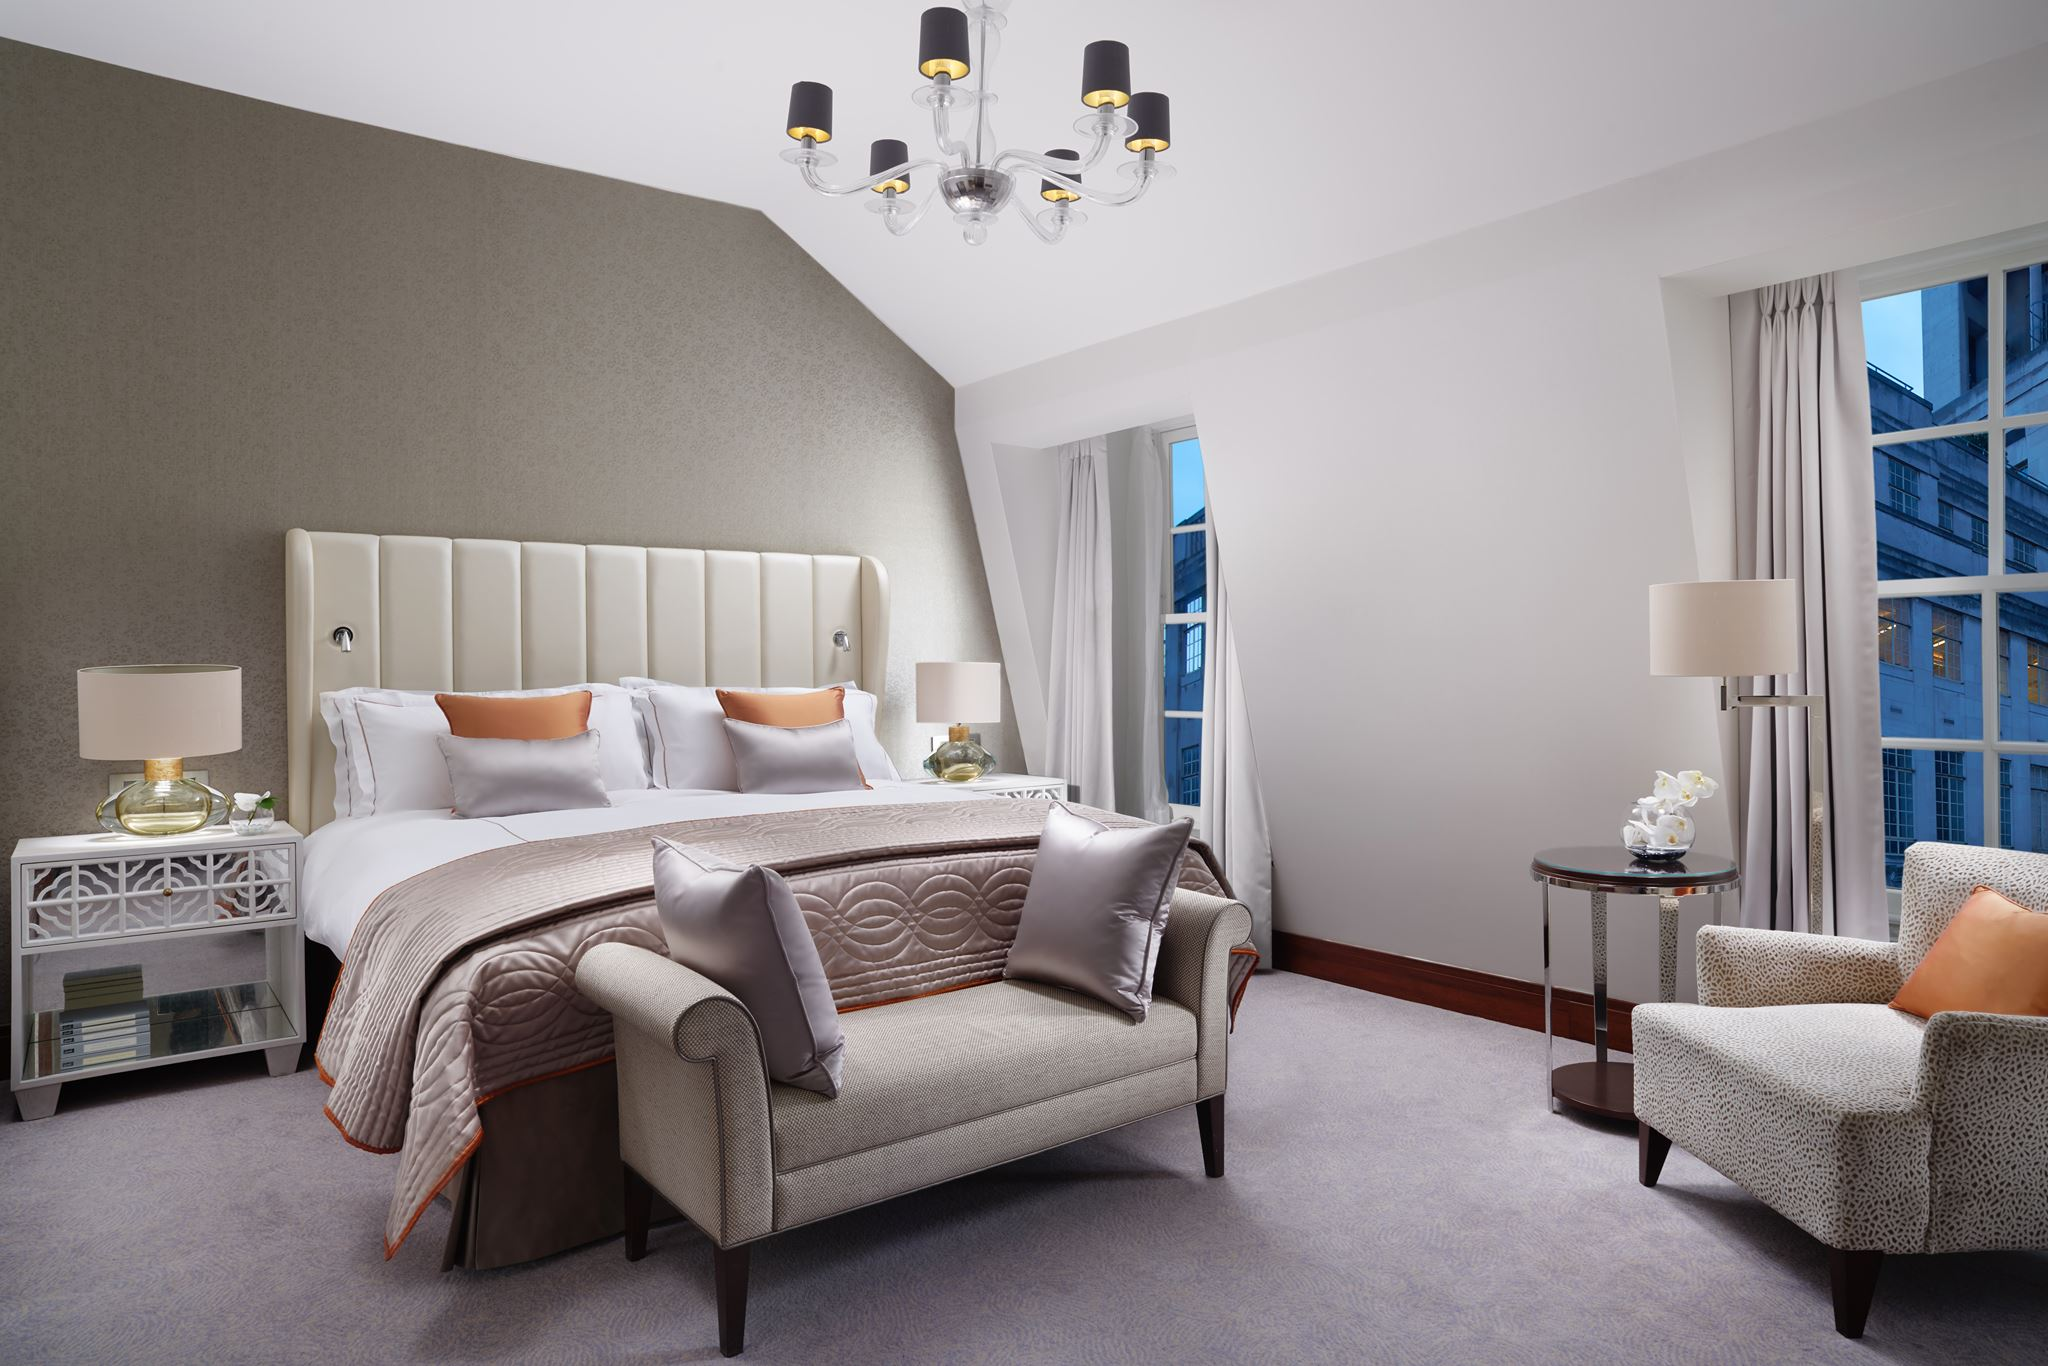 One of the excellent rooms at the Conrad London St James